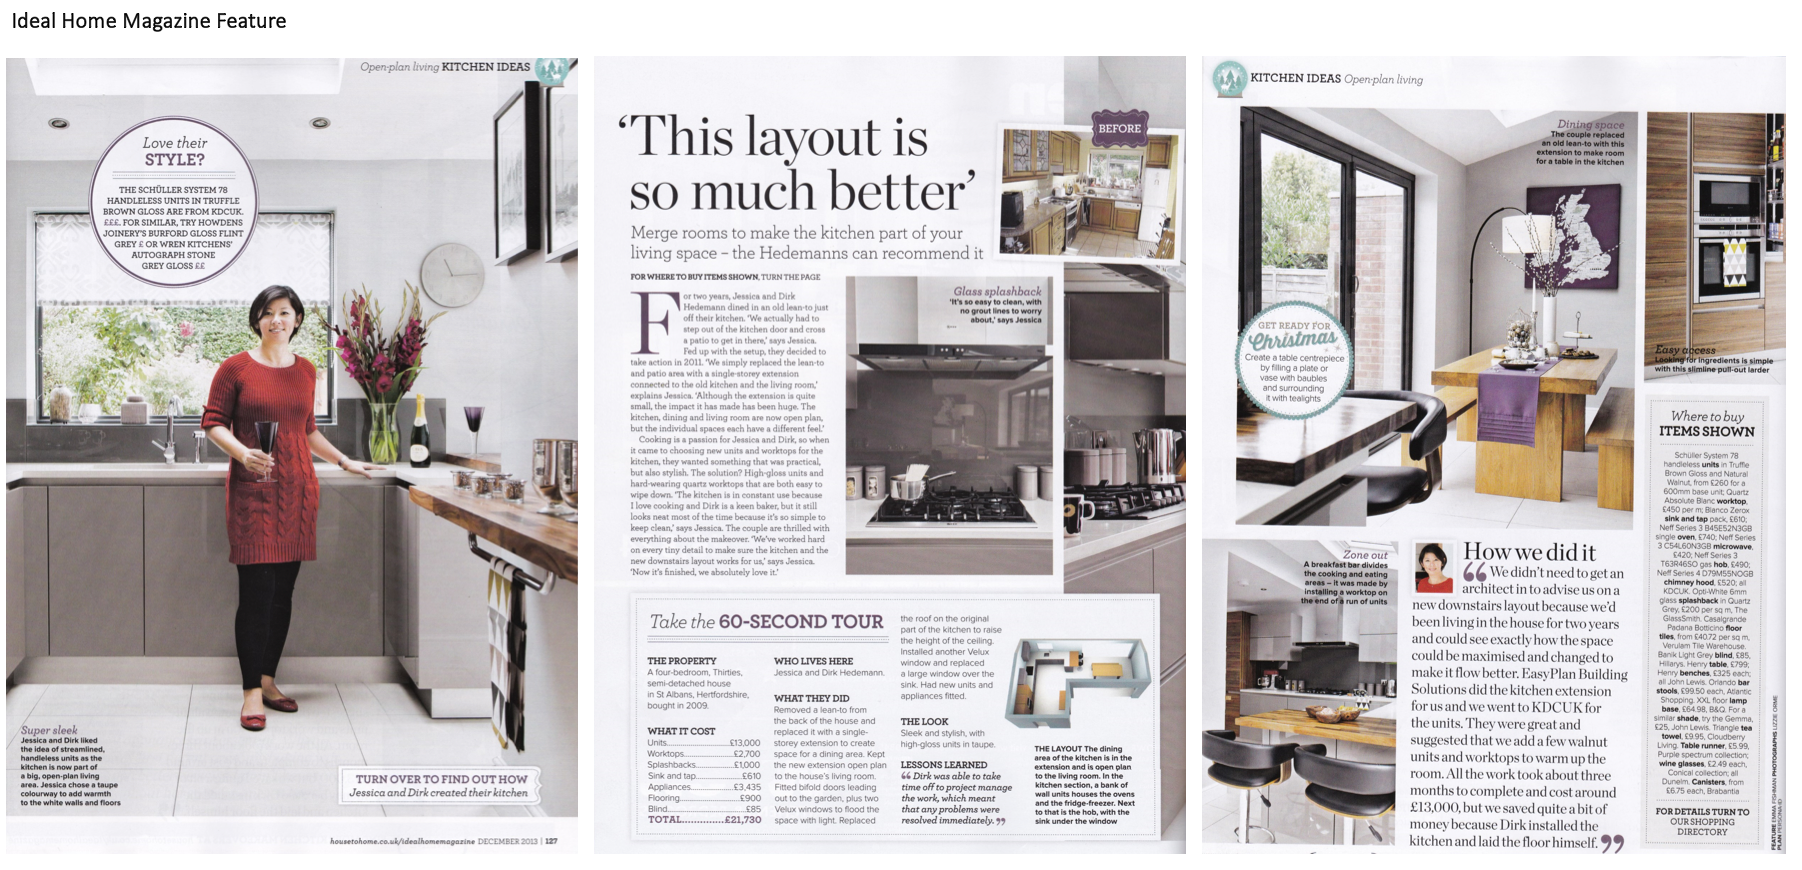 Ideal home magazine feature on home styling